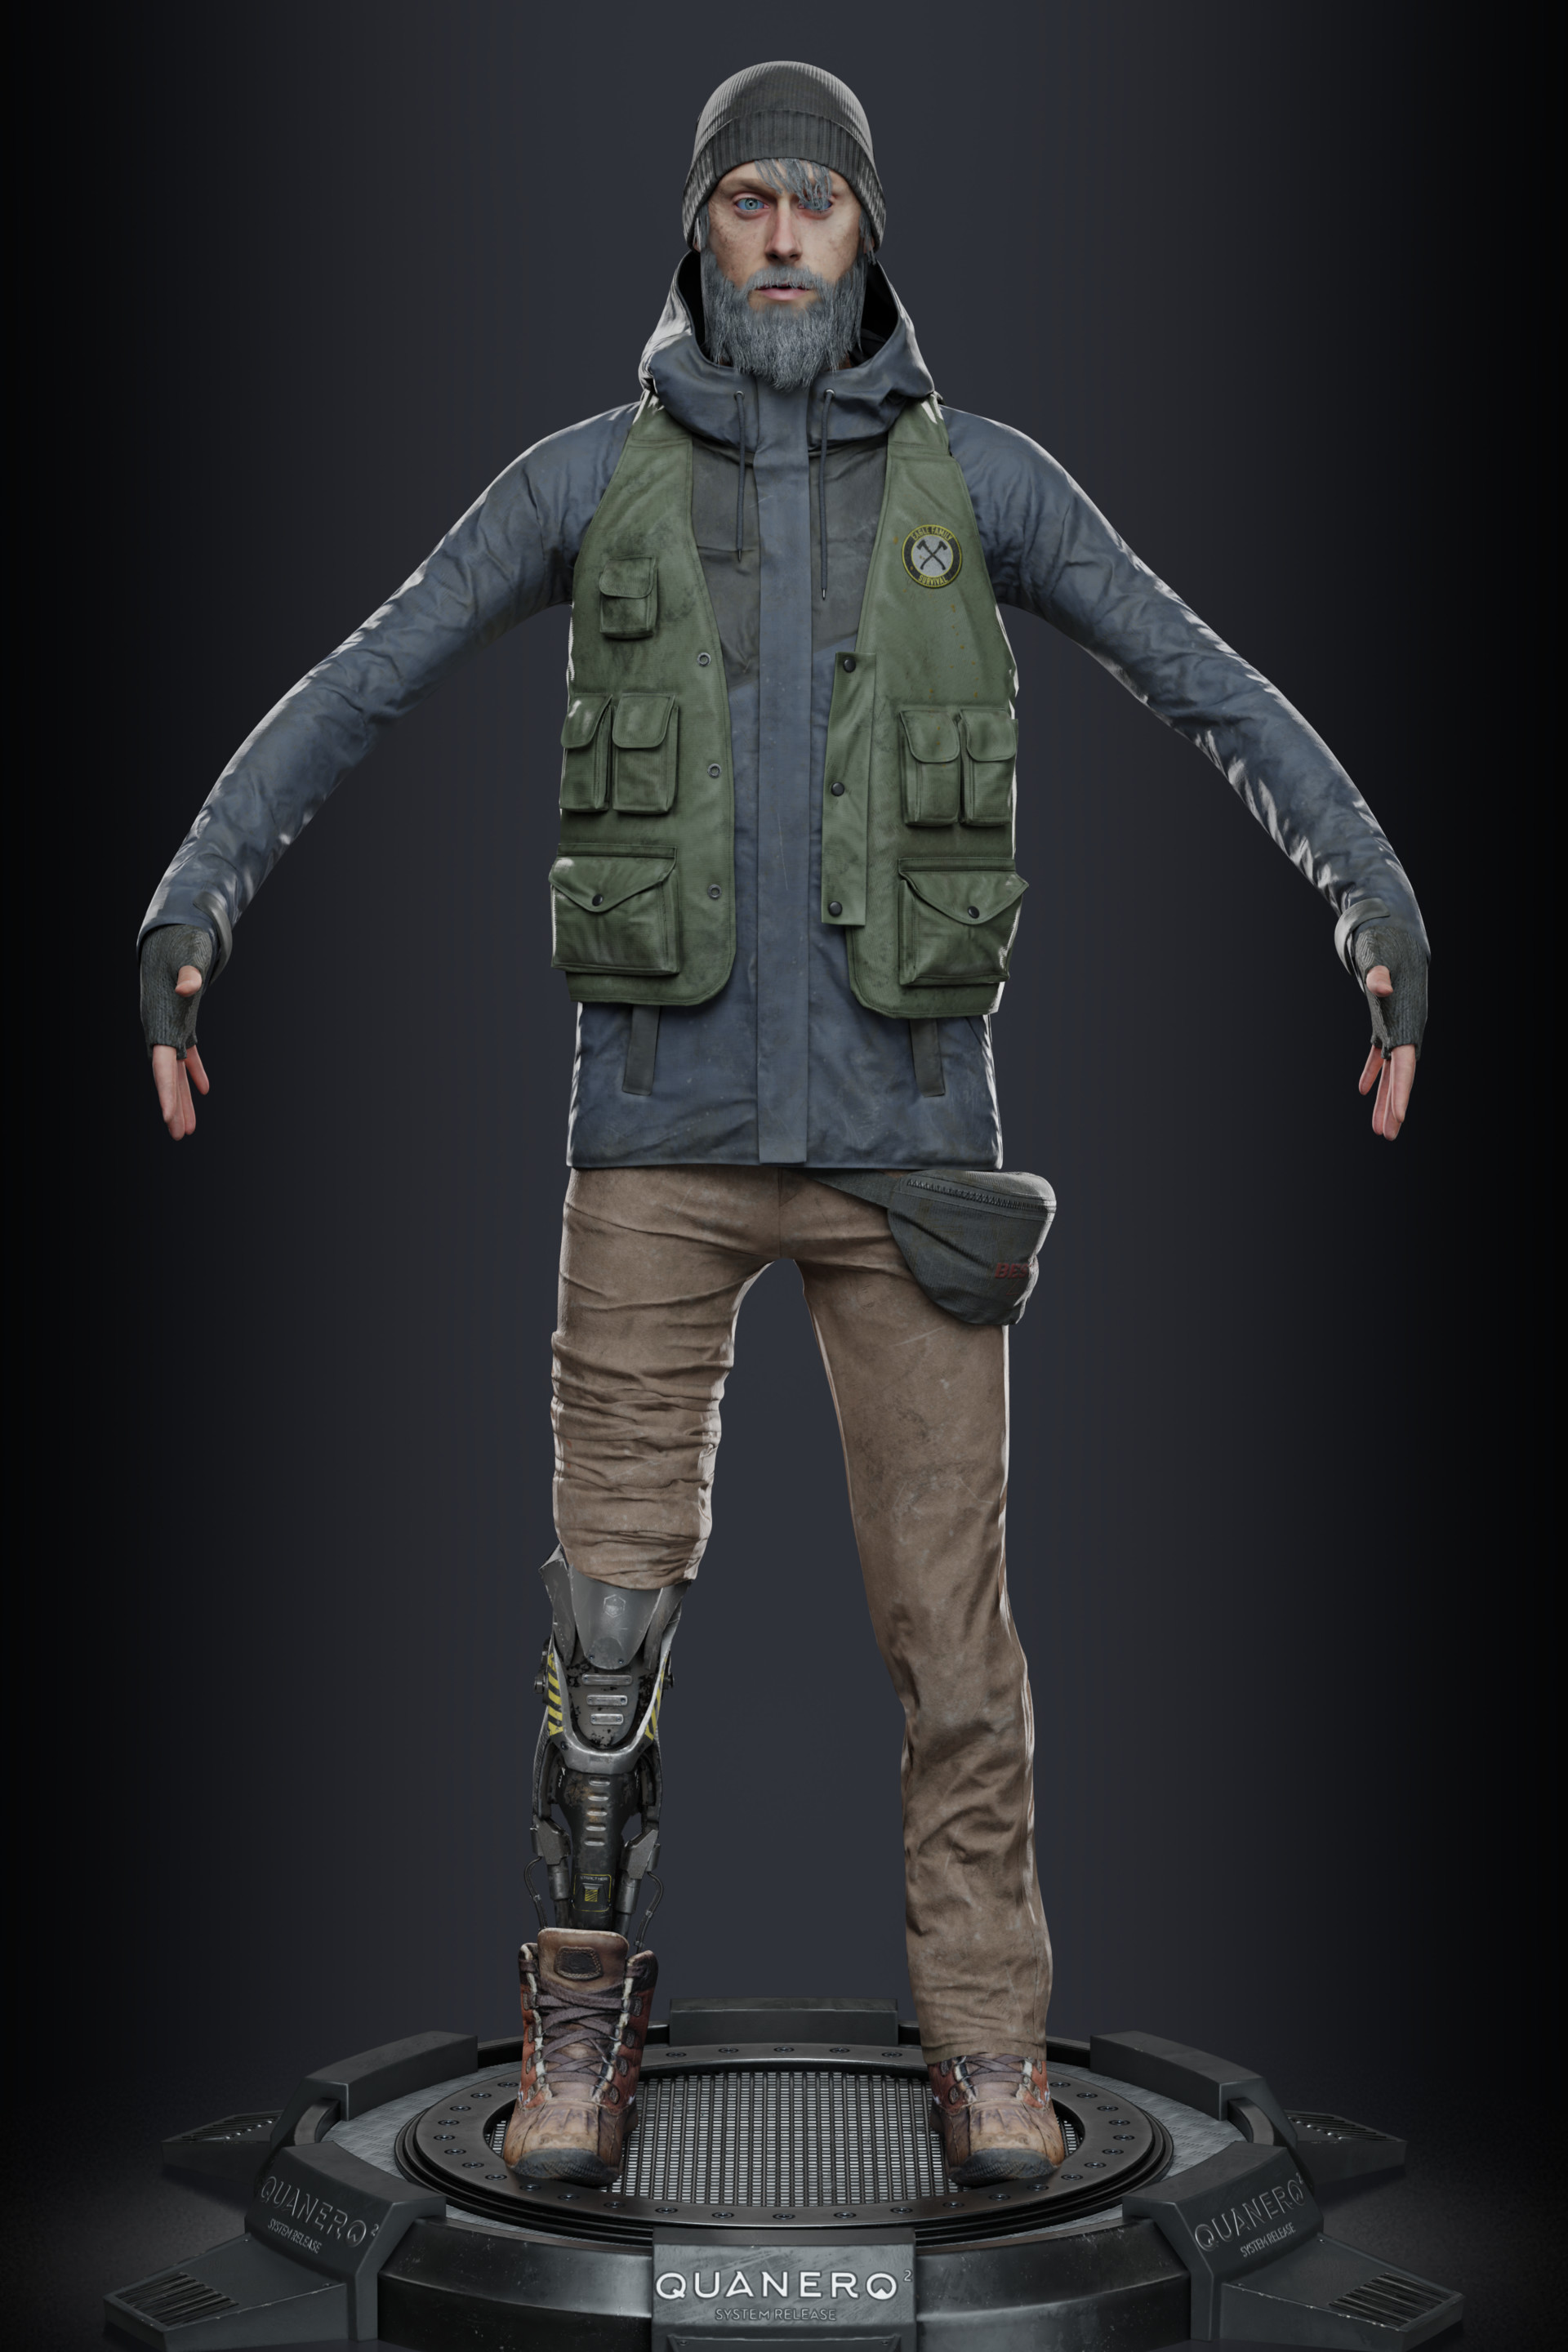 neutral A-pose rendering